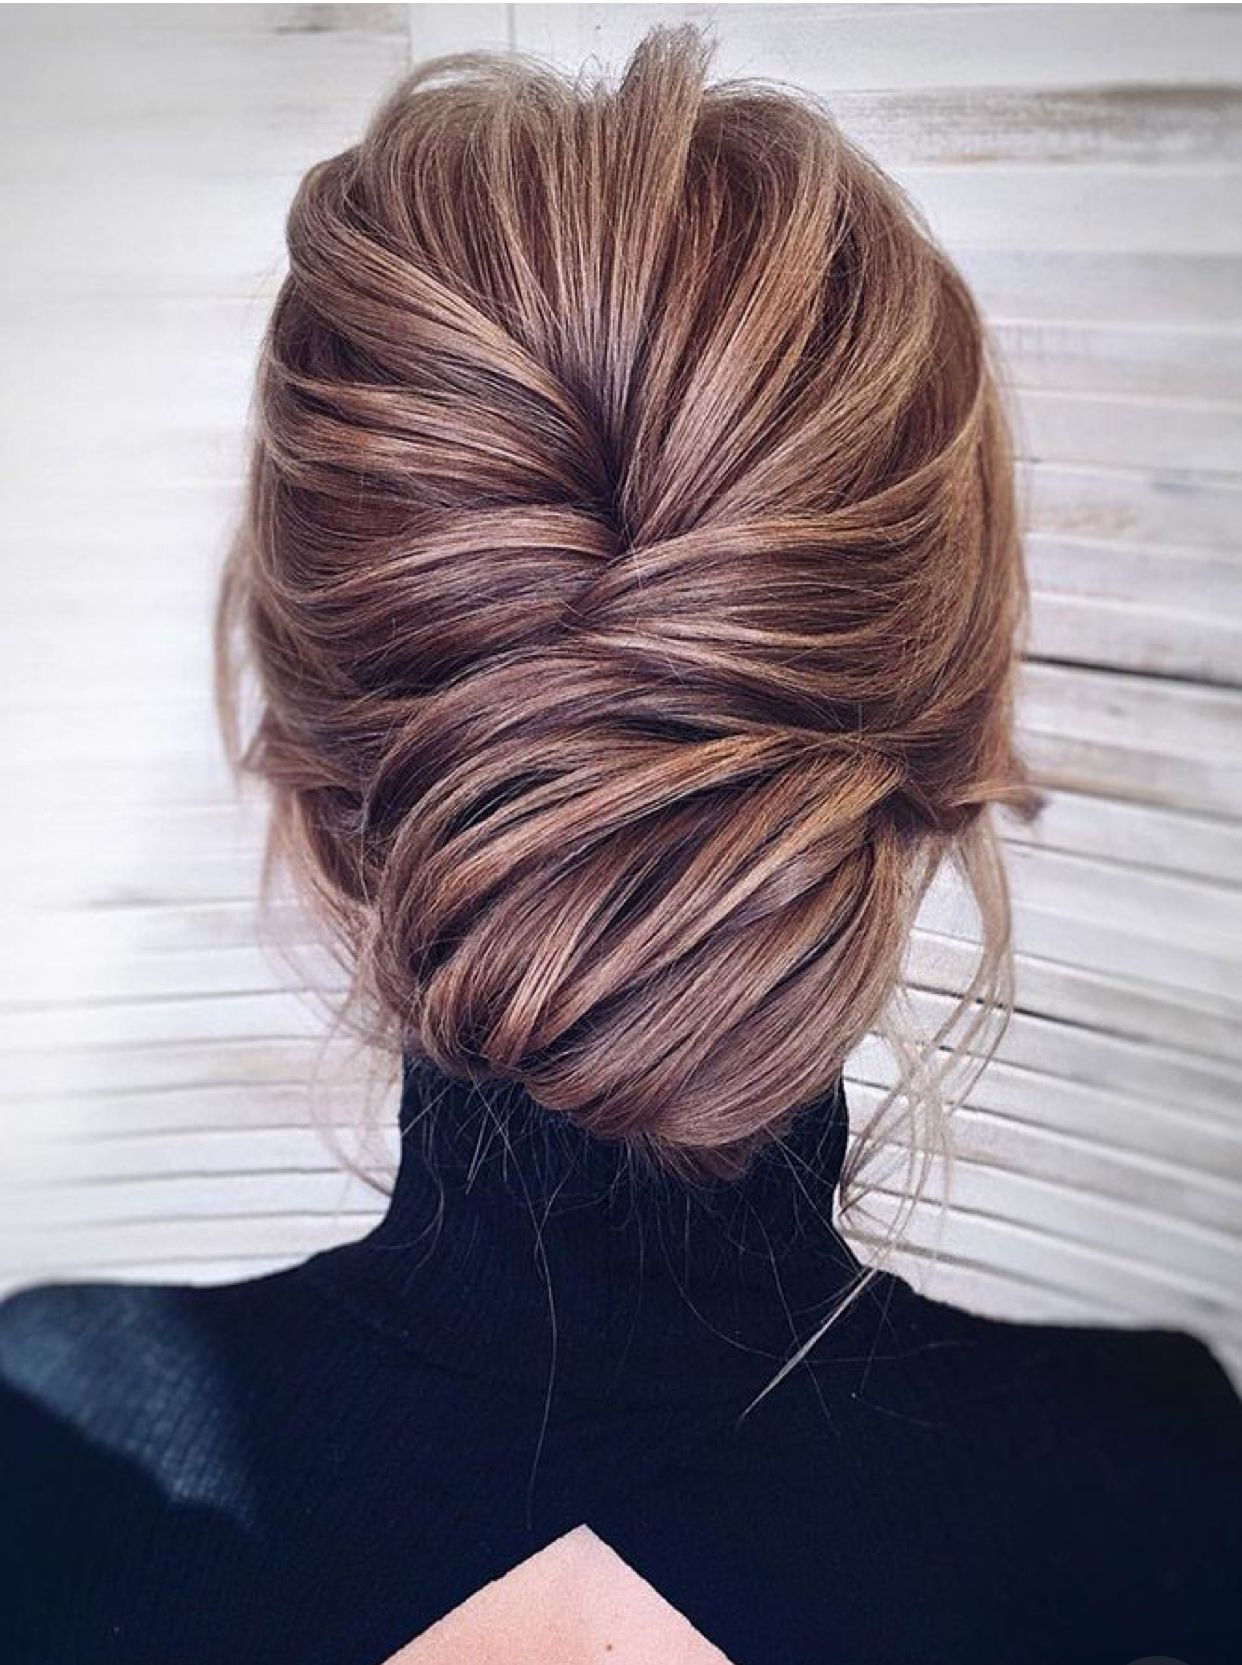 Updos Buns Mzmanerzhairteam Mzmanerz Be Inspirational Mz Manerz Being Well Dressed Is A Beautifu Hair Styles Mother Of The Bride Hair Long Hair Styles